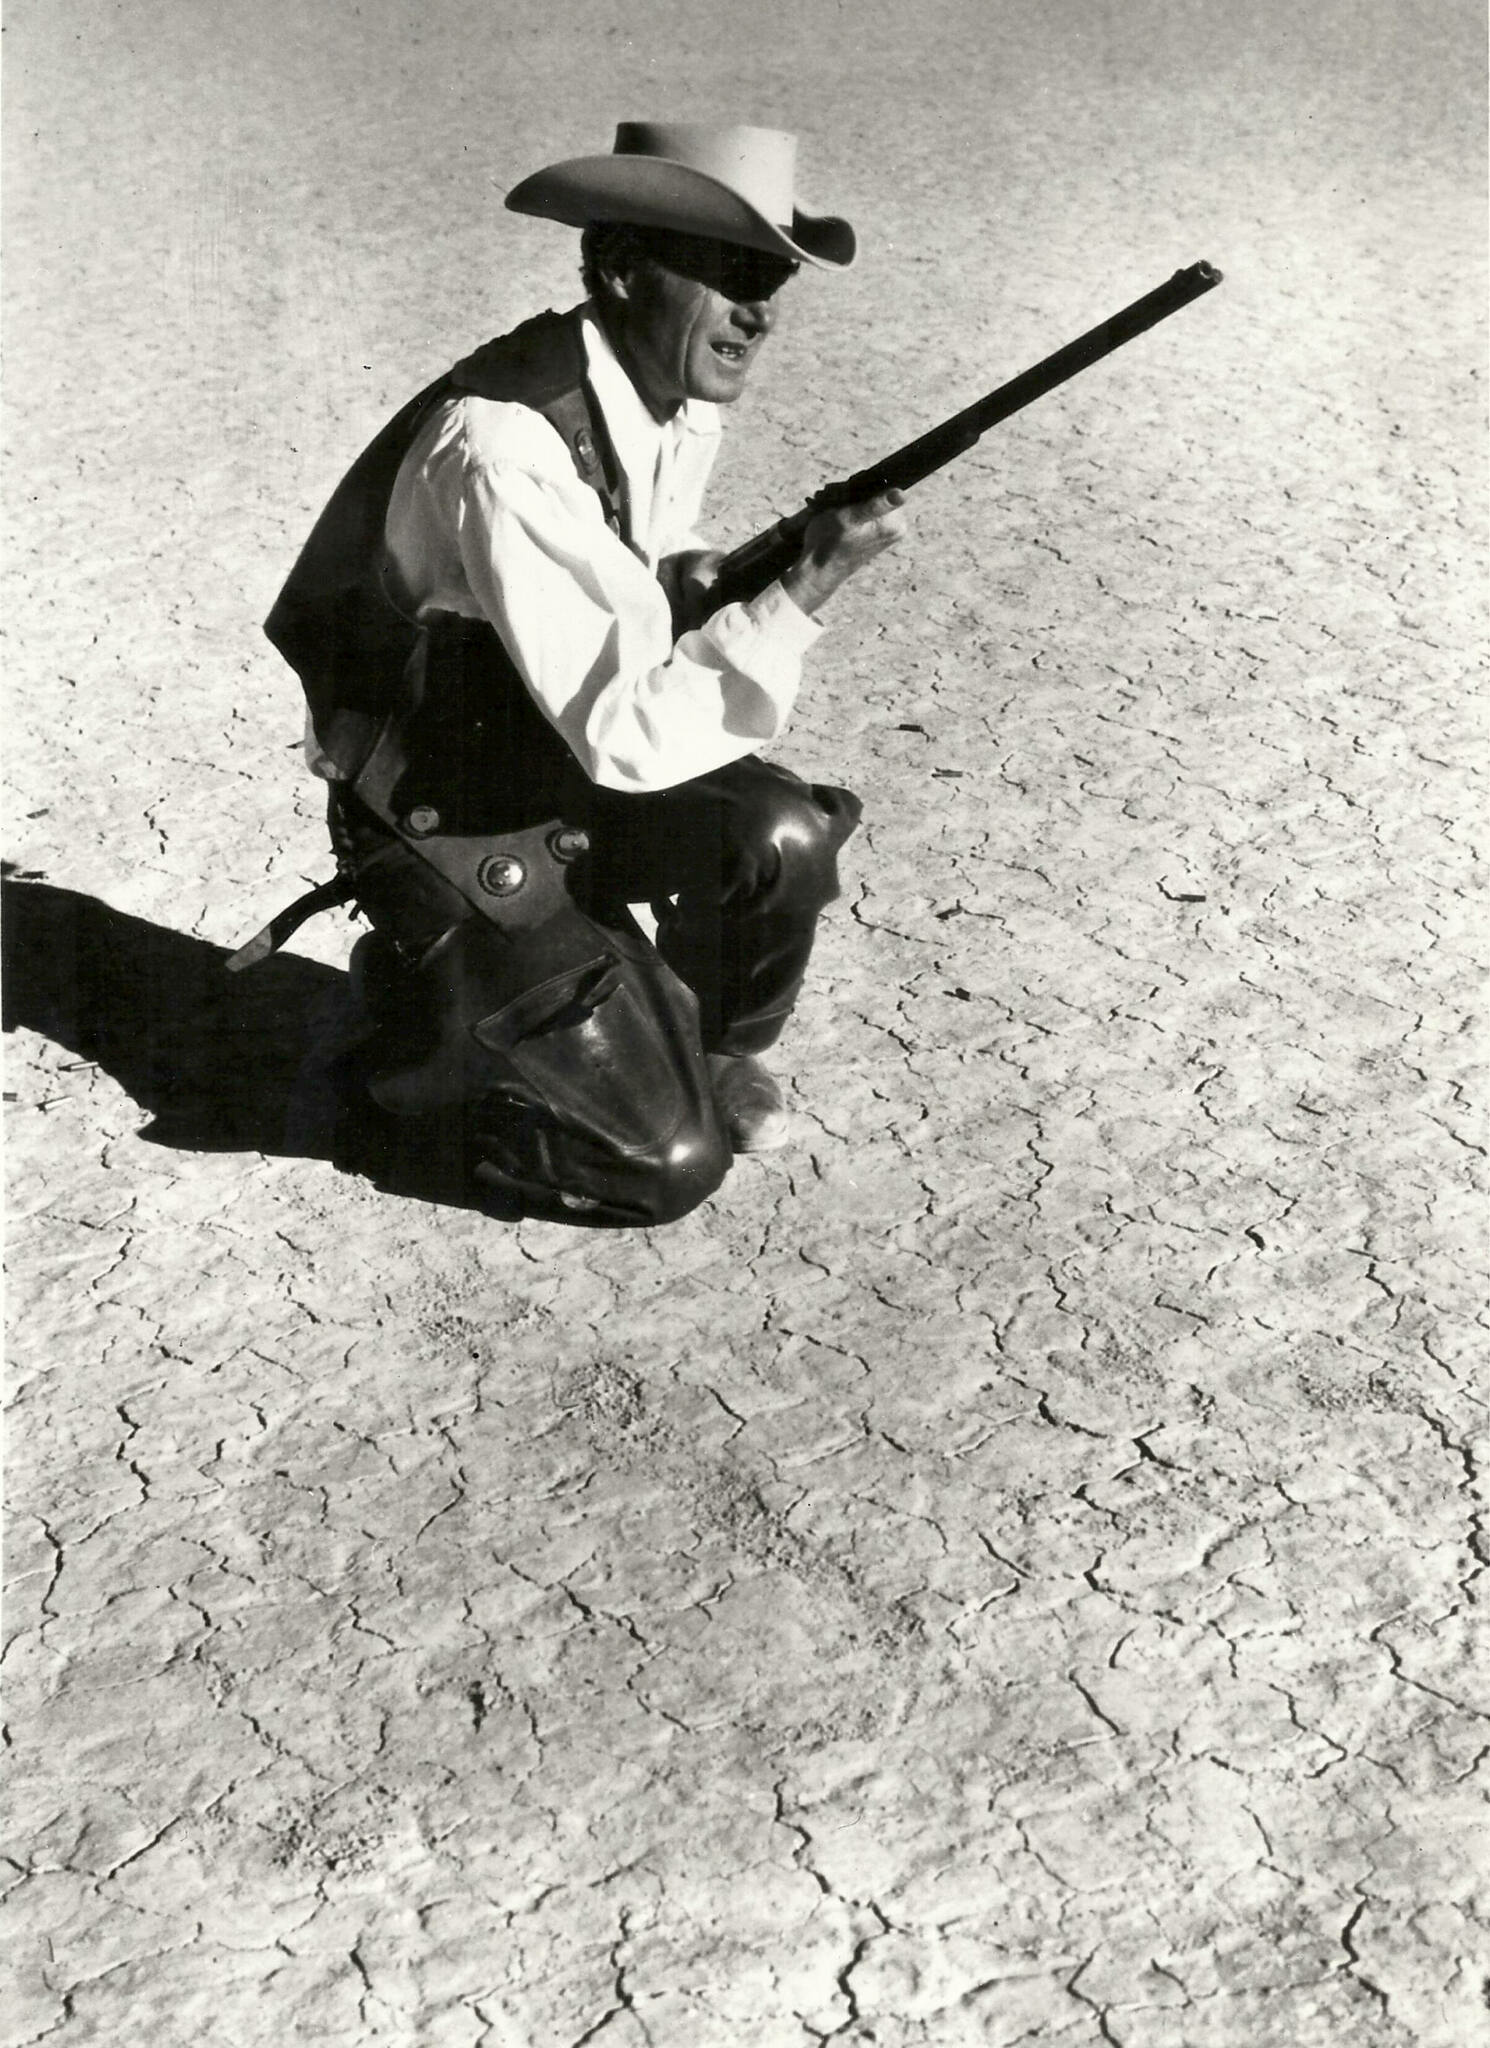 Black and white film still of a man in Western attire kneeling with a rifle on a cracked desert terrain